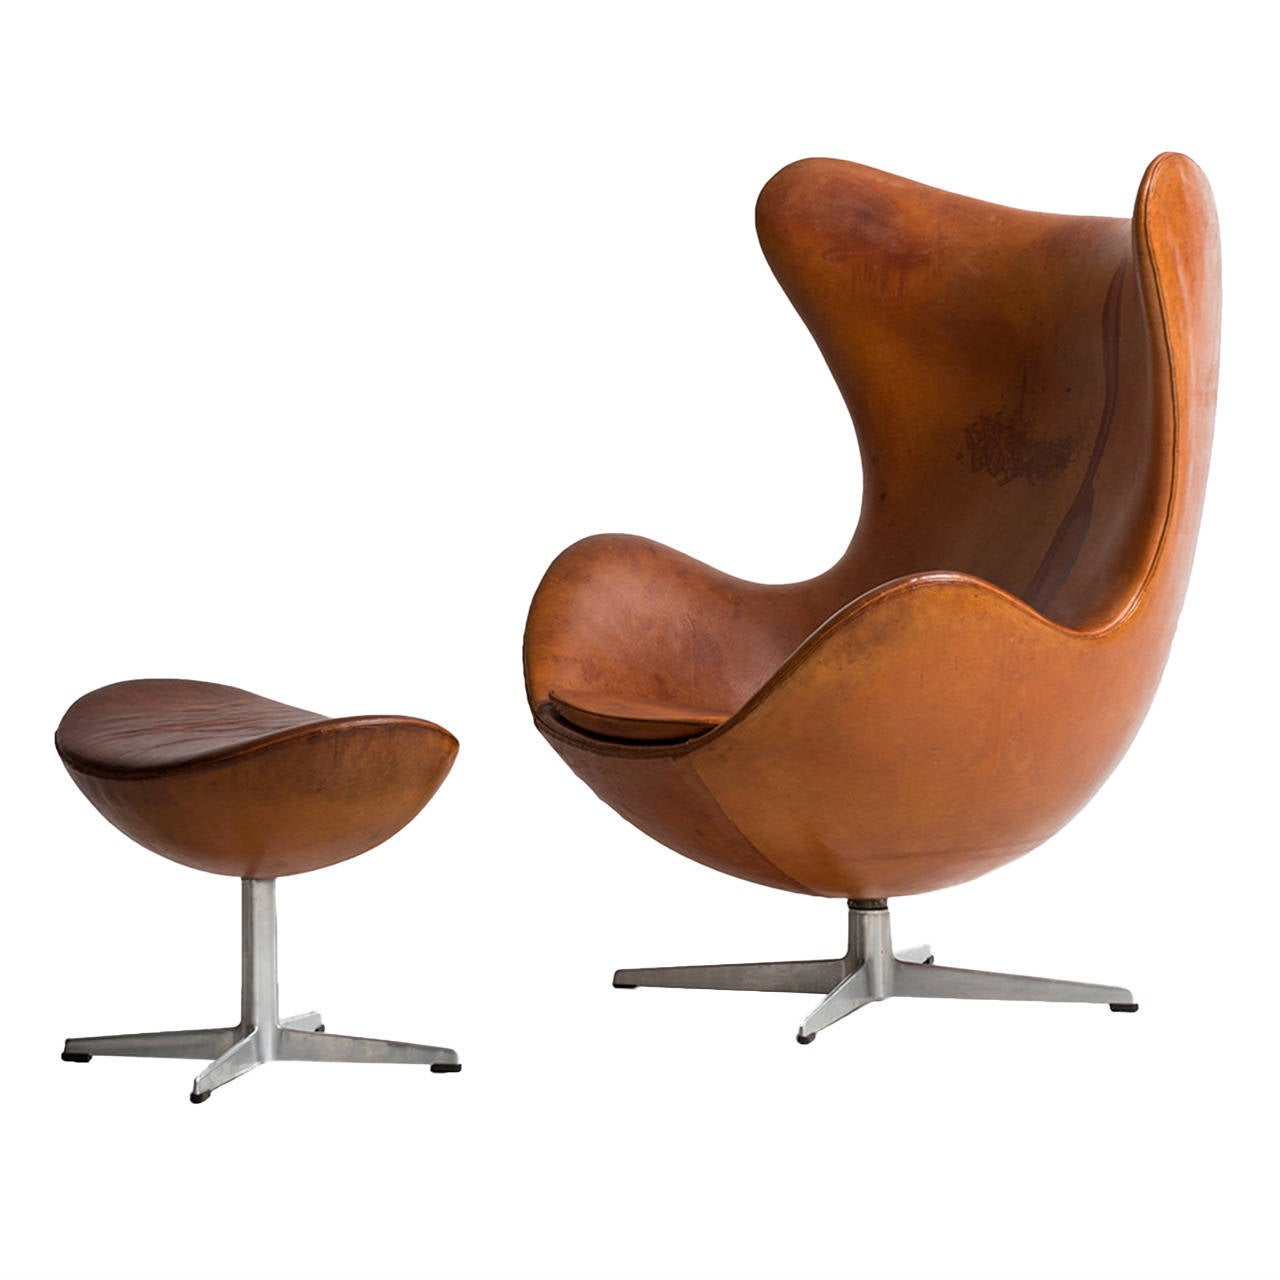 Arne jacobsen egg chair in original cognac brown leather for Egg chair jacobsen